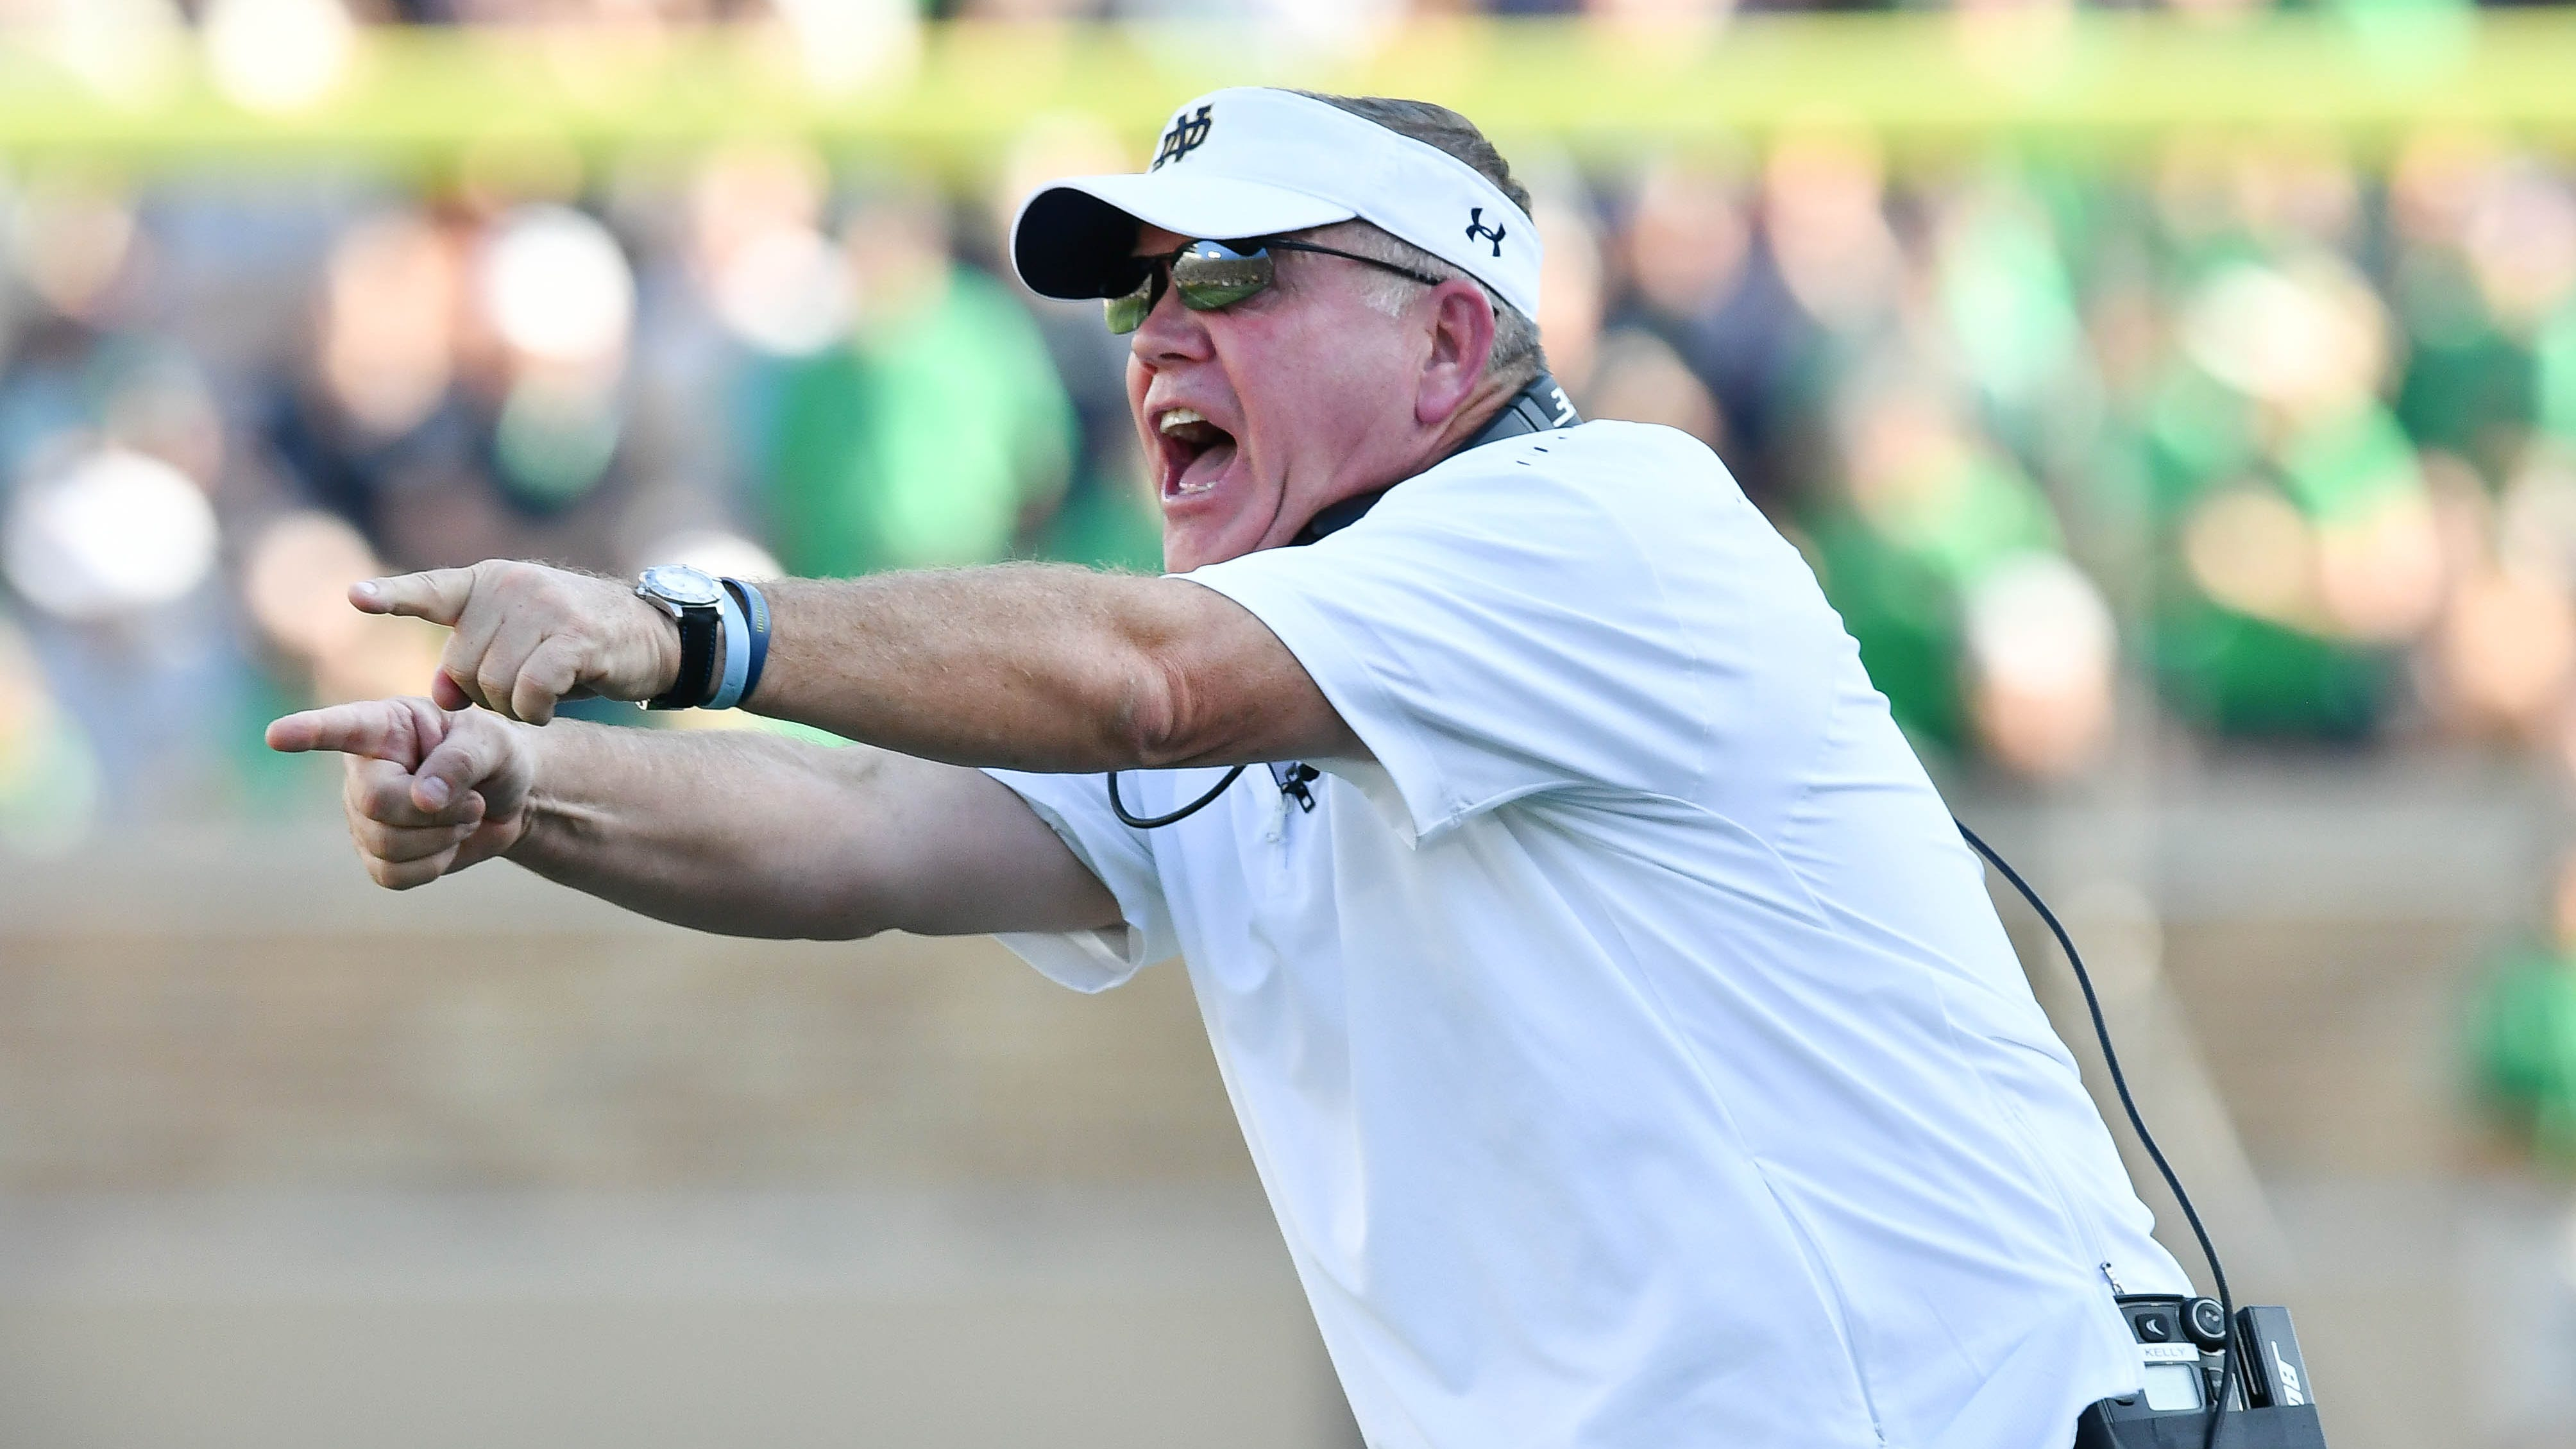 How To Watch Notre Dame Northwestern Football What Is The Game Time